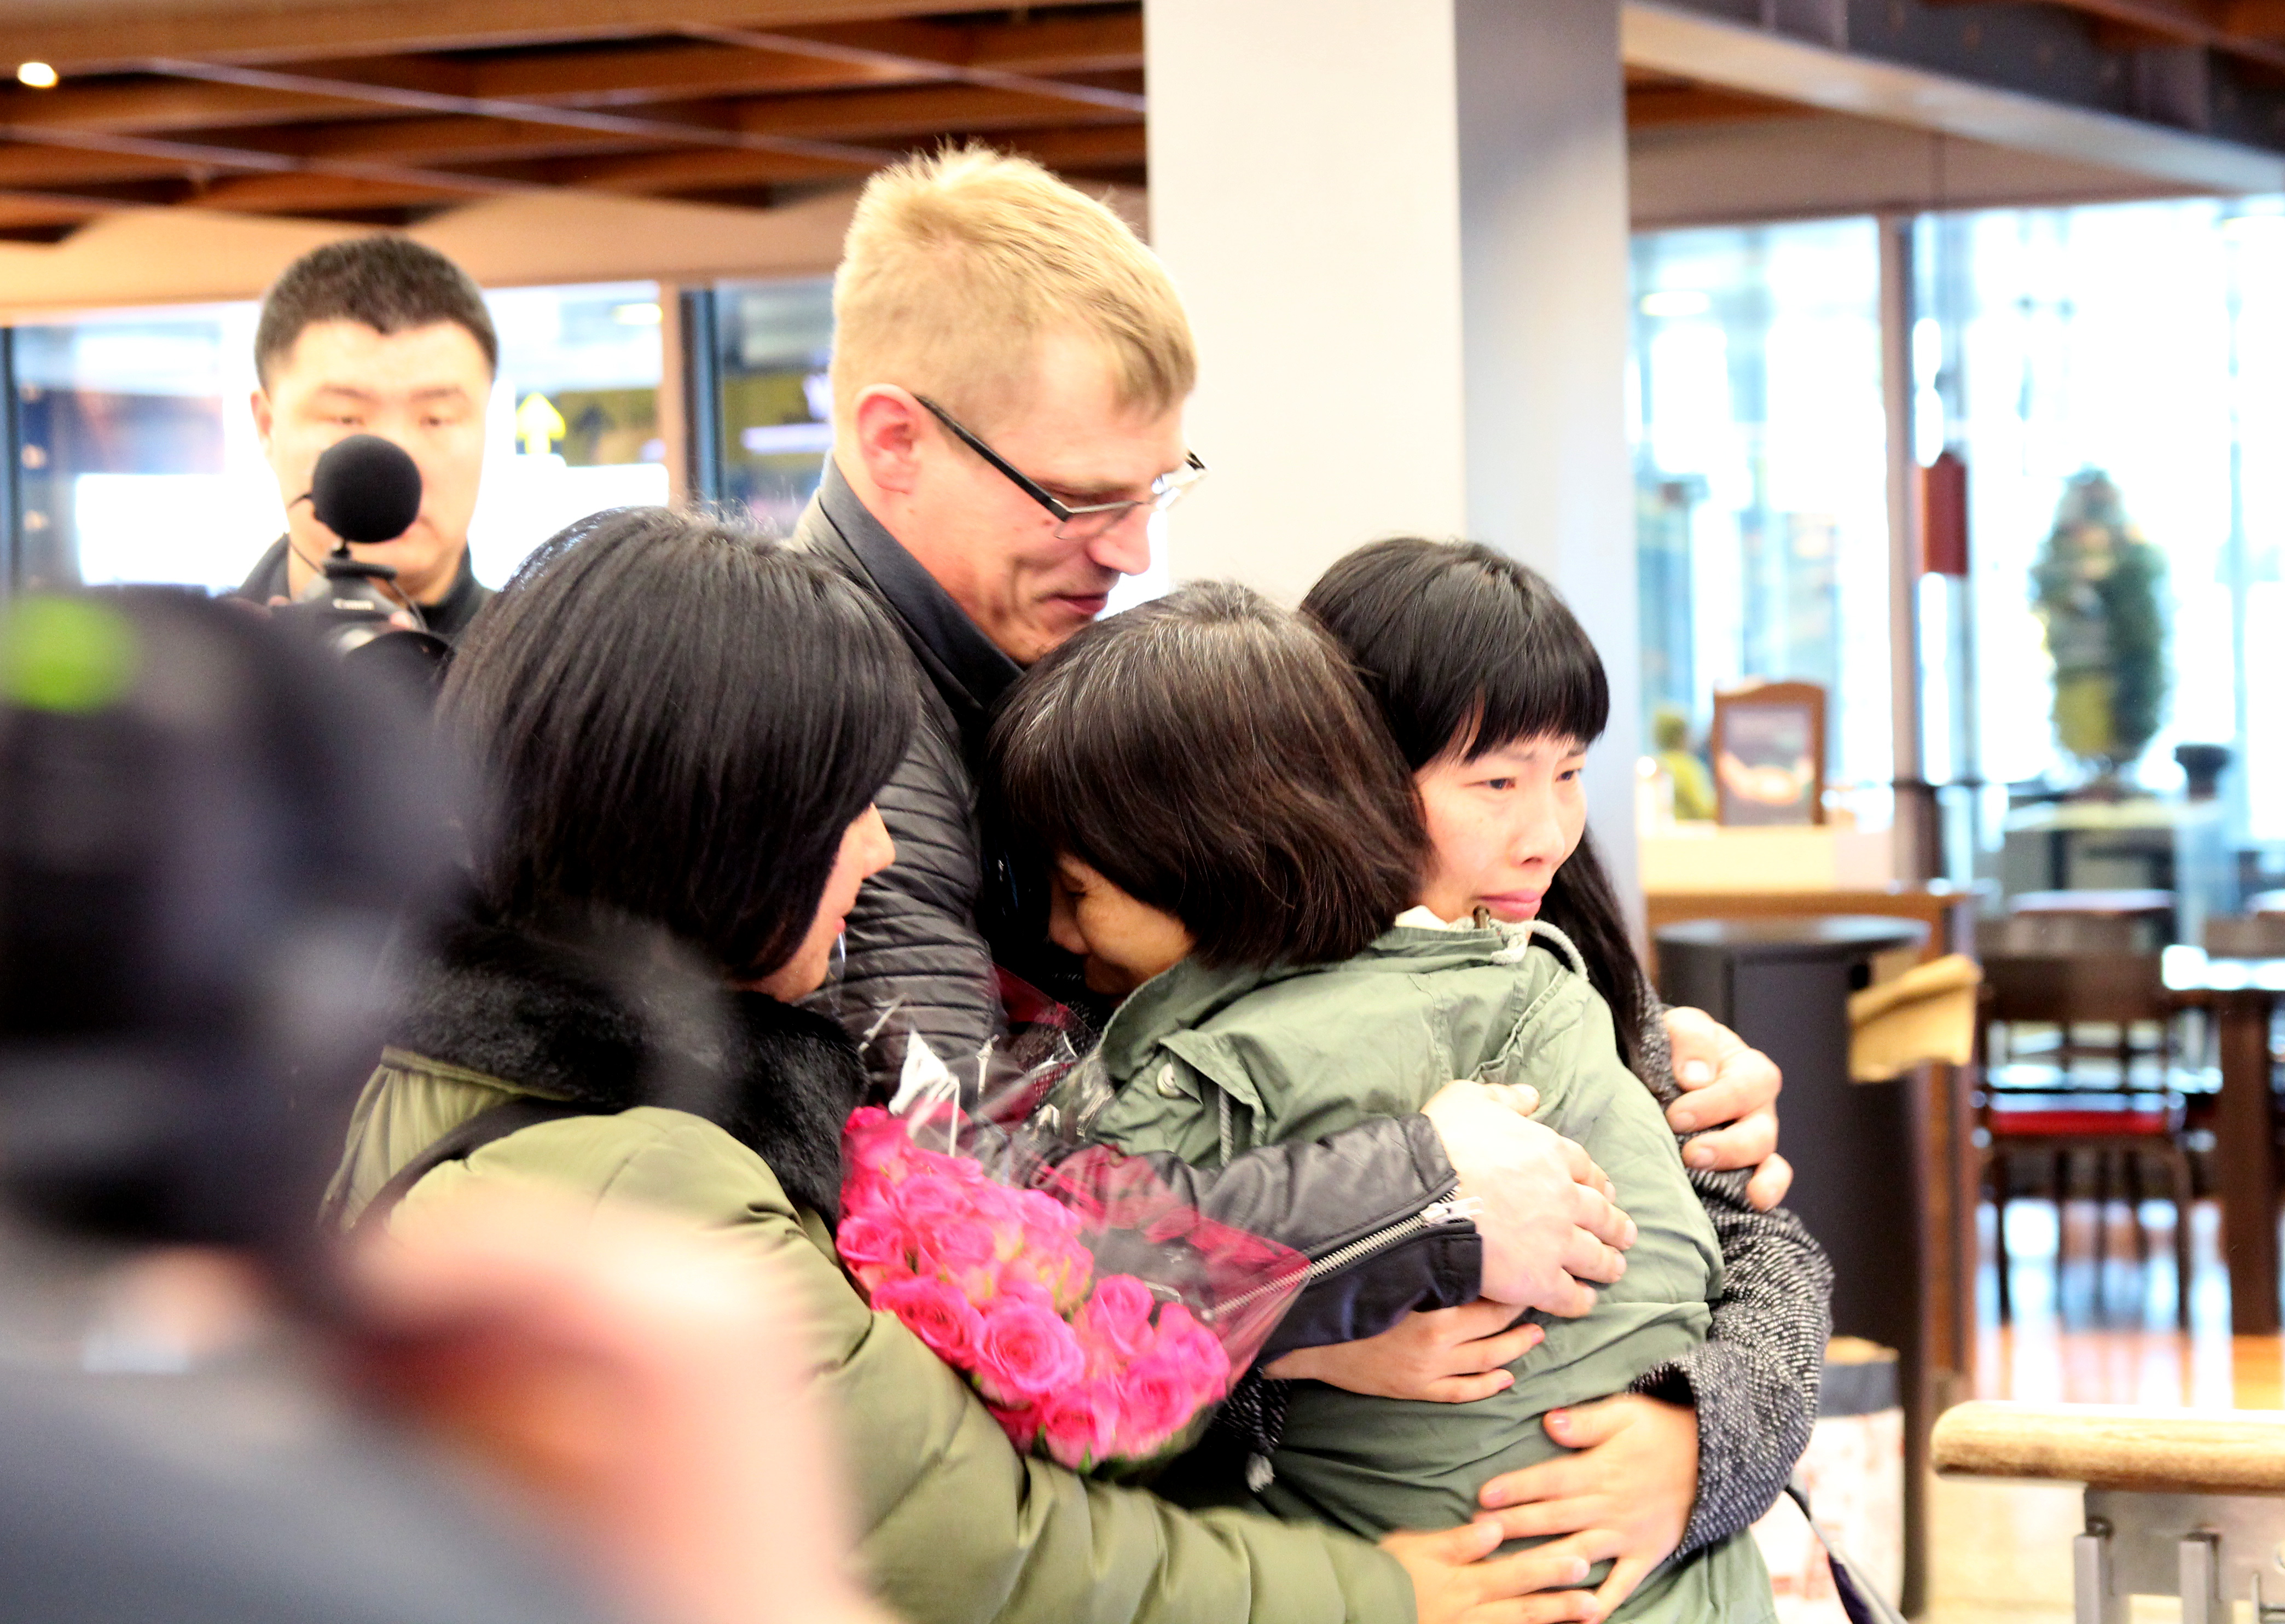 Former Chinese prisoner of conscience Chen Zhenping was greeted by her family and Amnesty International Finland activists upon her arrival to Finland.  Falun Gong practitioner Chen Zhenping was detained in August 2008 and sentenced to eight-years behind bars. While imprisoned, she endured brutal torture and ill-treatment- all because of her religious beliefs.